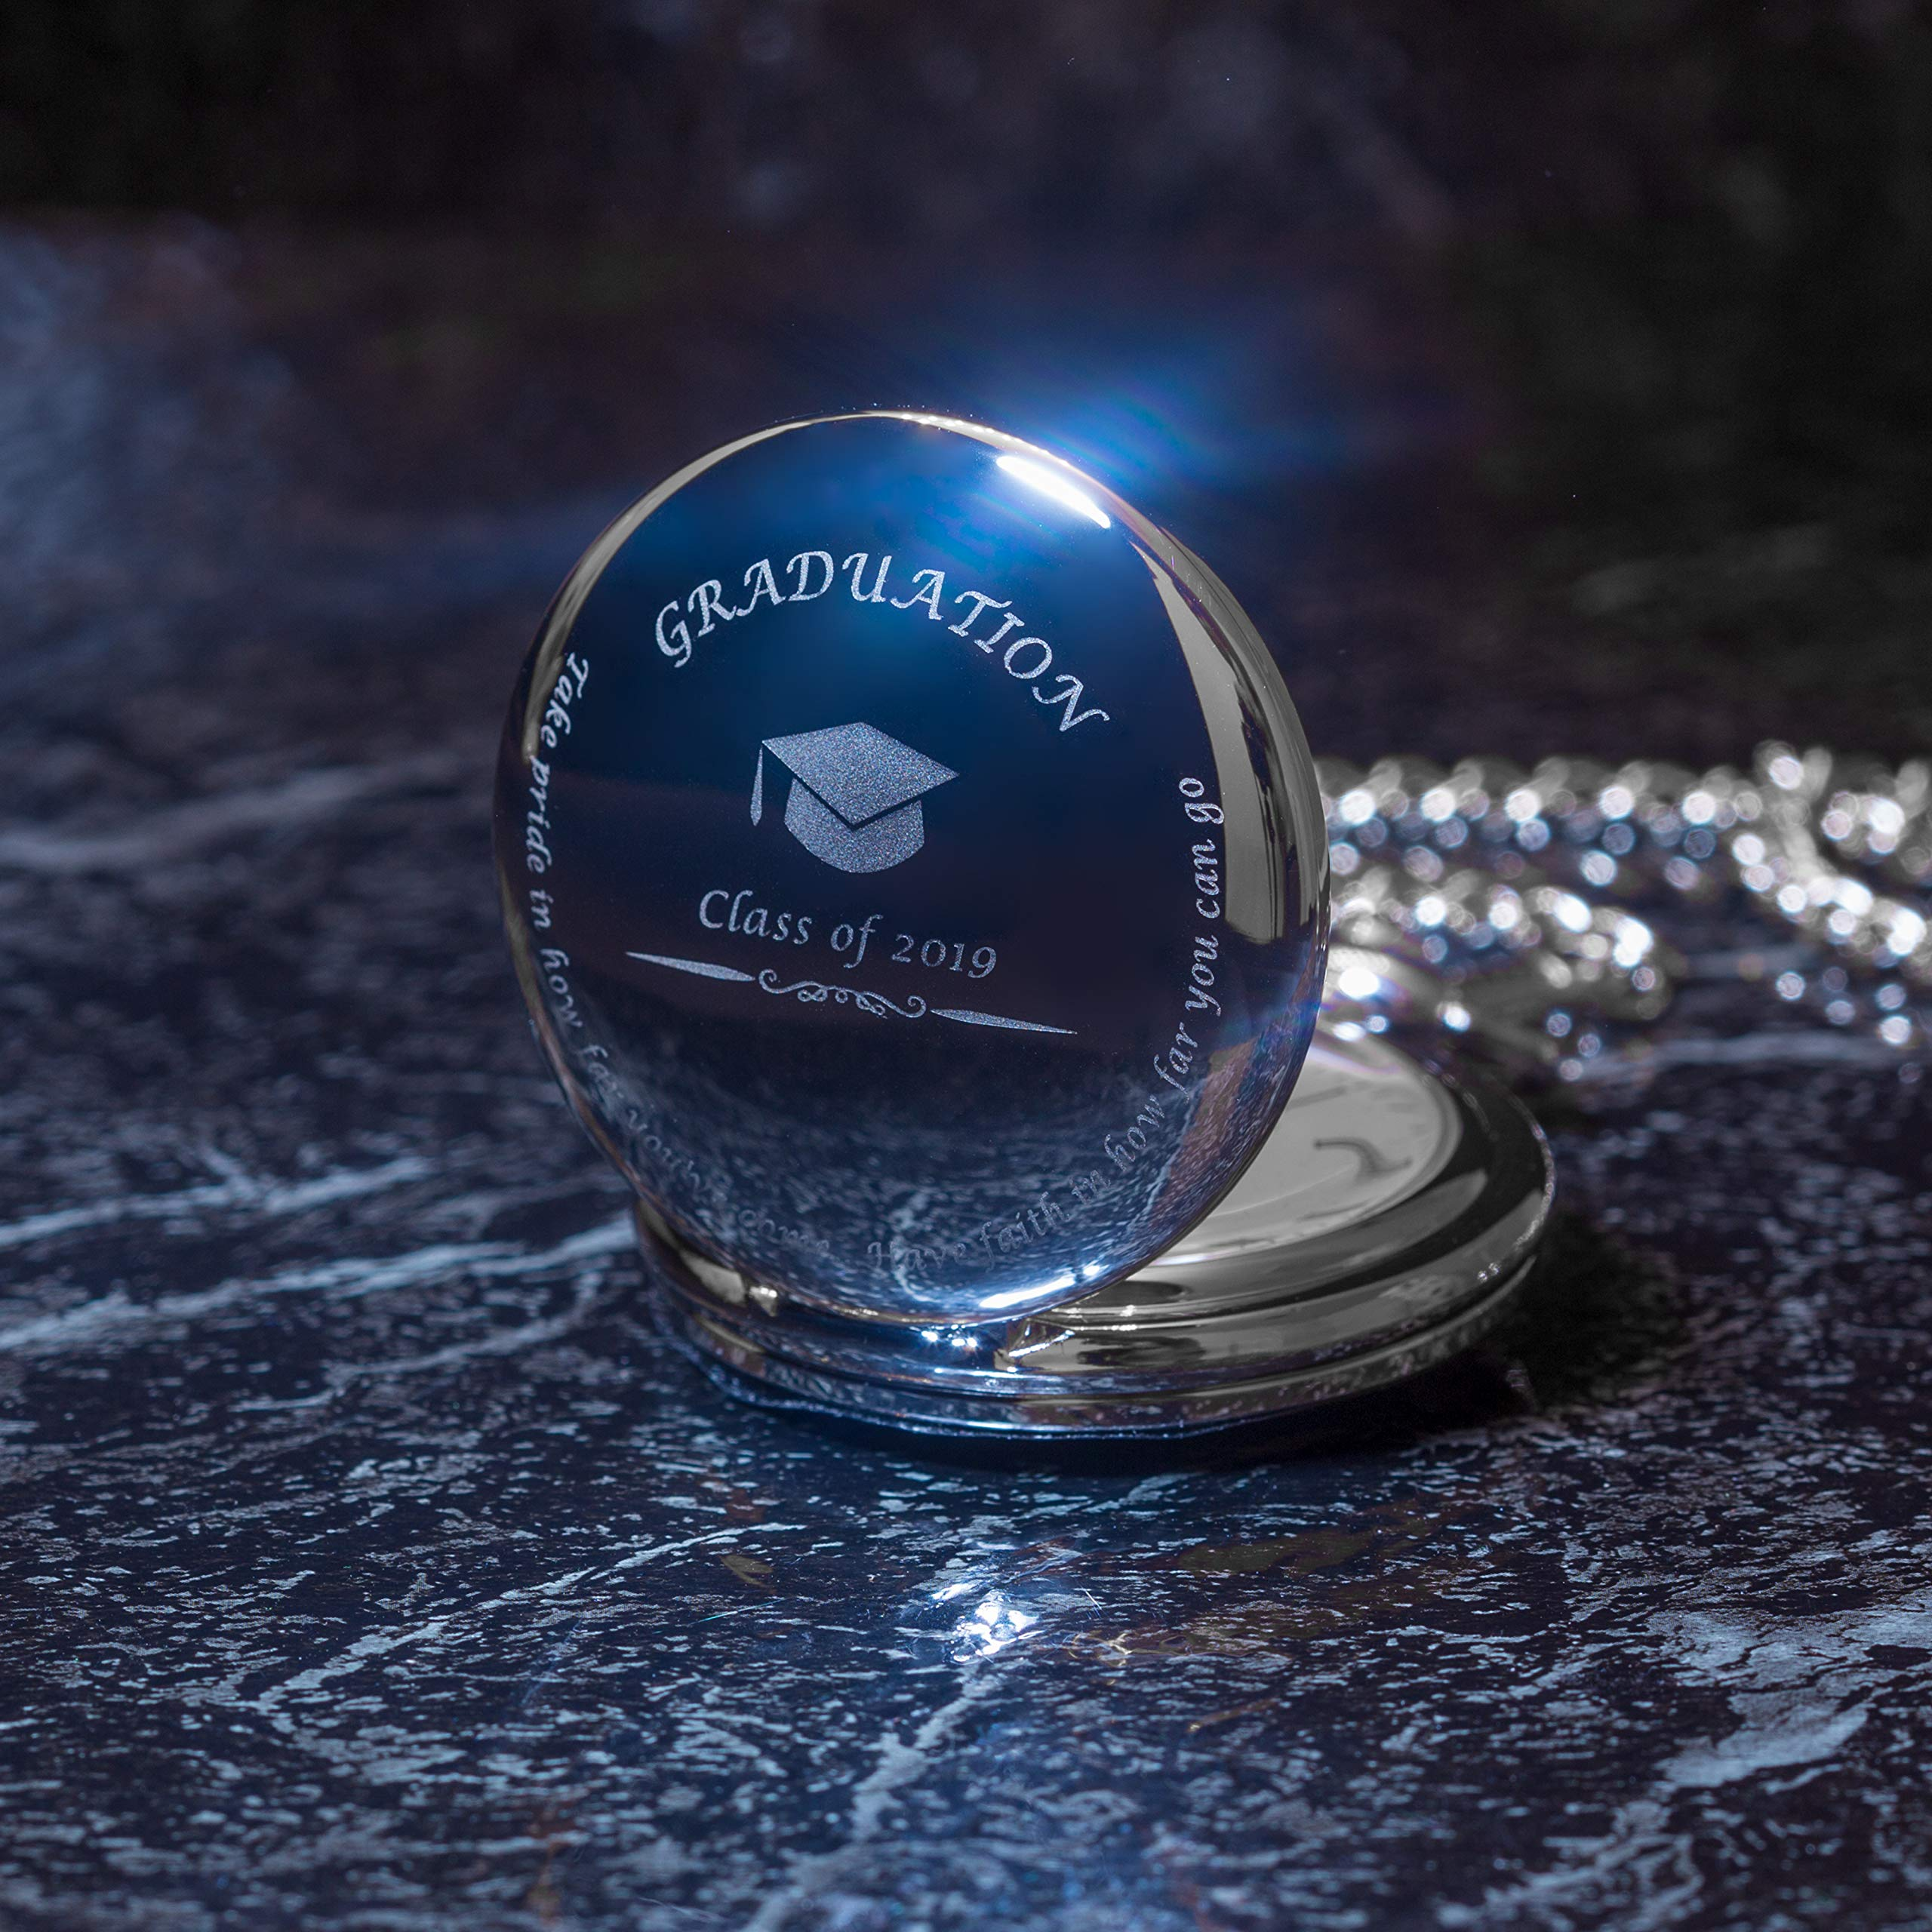 Graduation Gifts for Him - Pocket Watch - Engraved 'Class of 2019' - Perfect College / High School Graduation Gift or Present for Son | Him in 2019 by FREDERICK JAMES (Image #2)